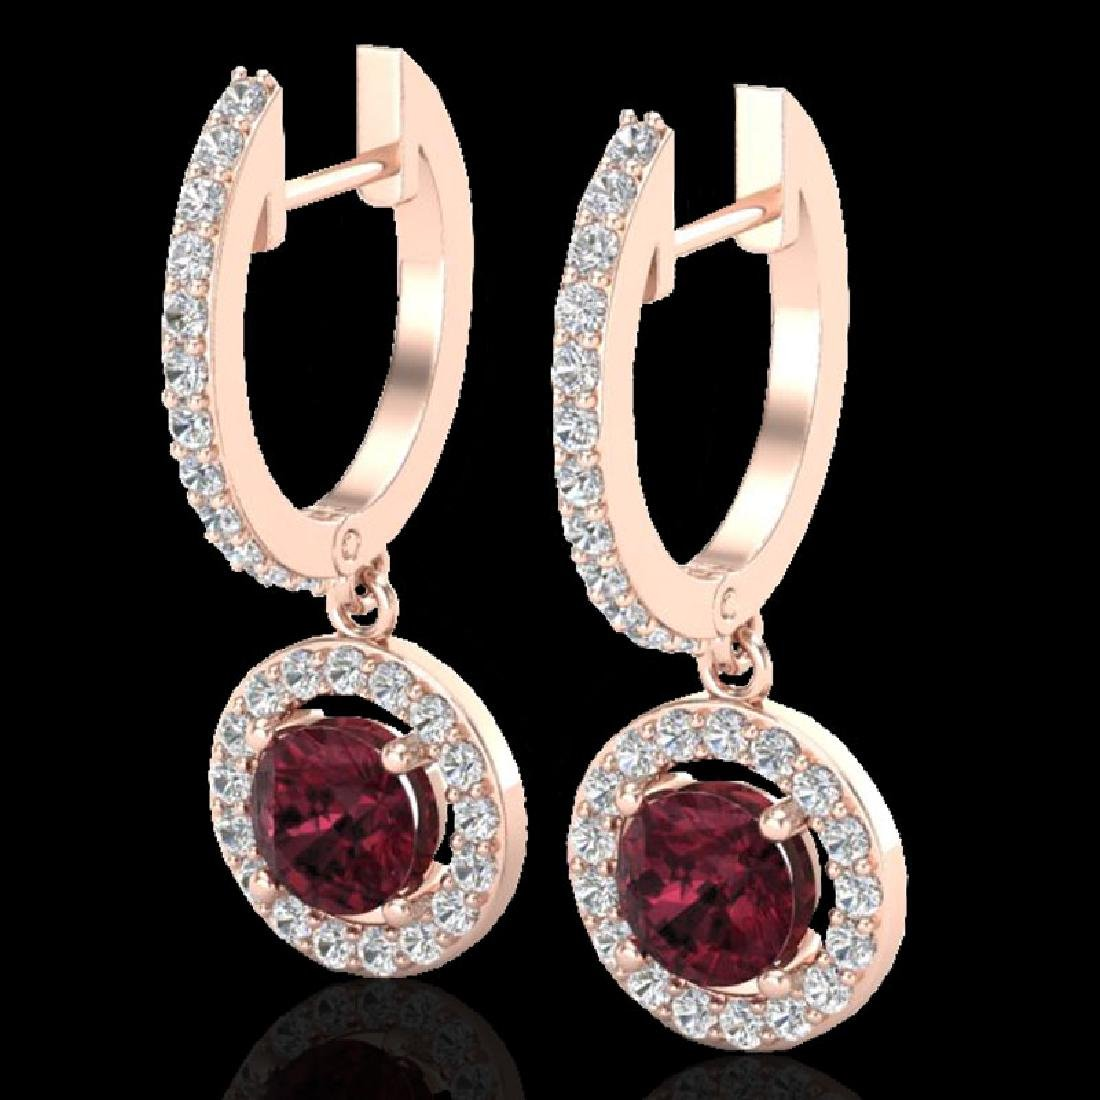 1.75 CTW Garnet & Micro Halo VS/SI Diamond Earrings 14K